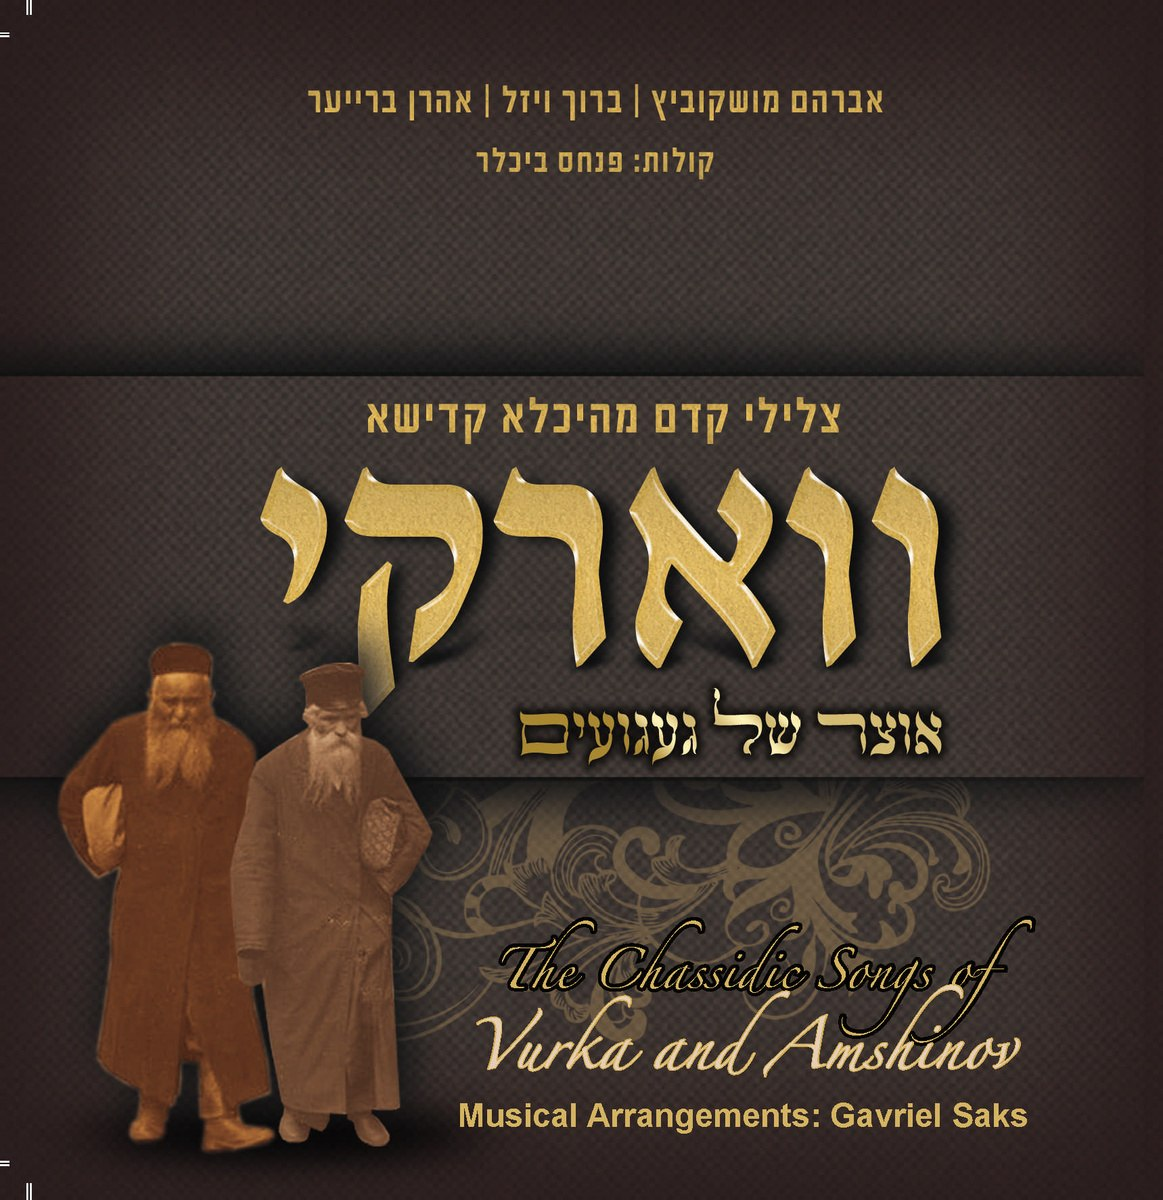 The Chassidic Songs of Vurka and Amshinov (2013)